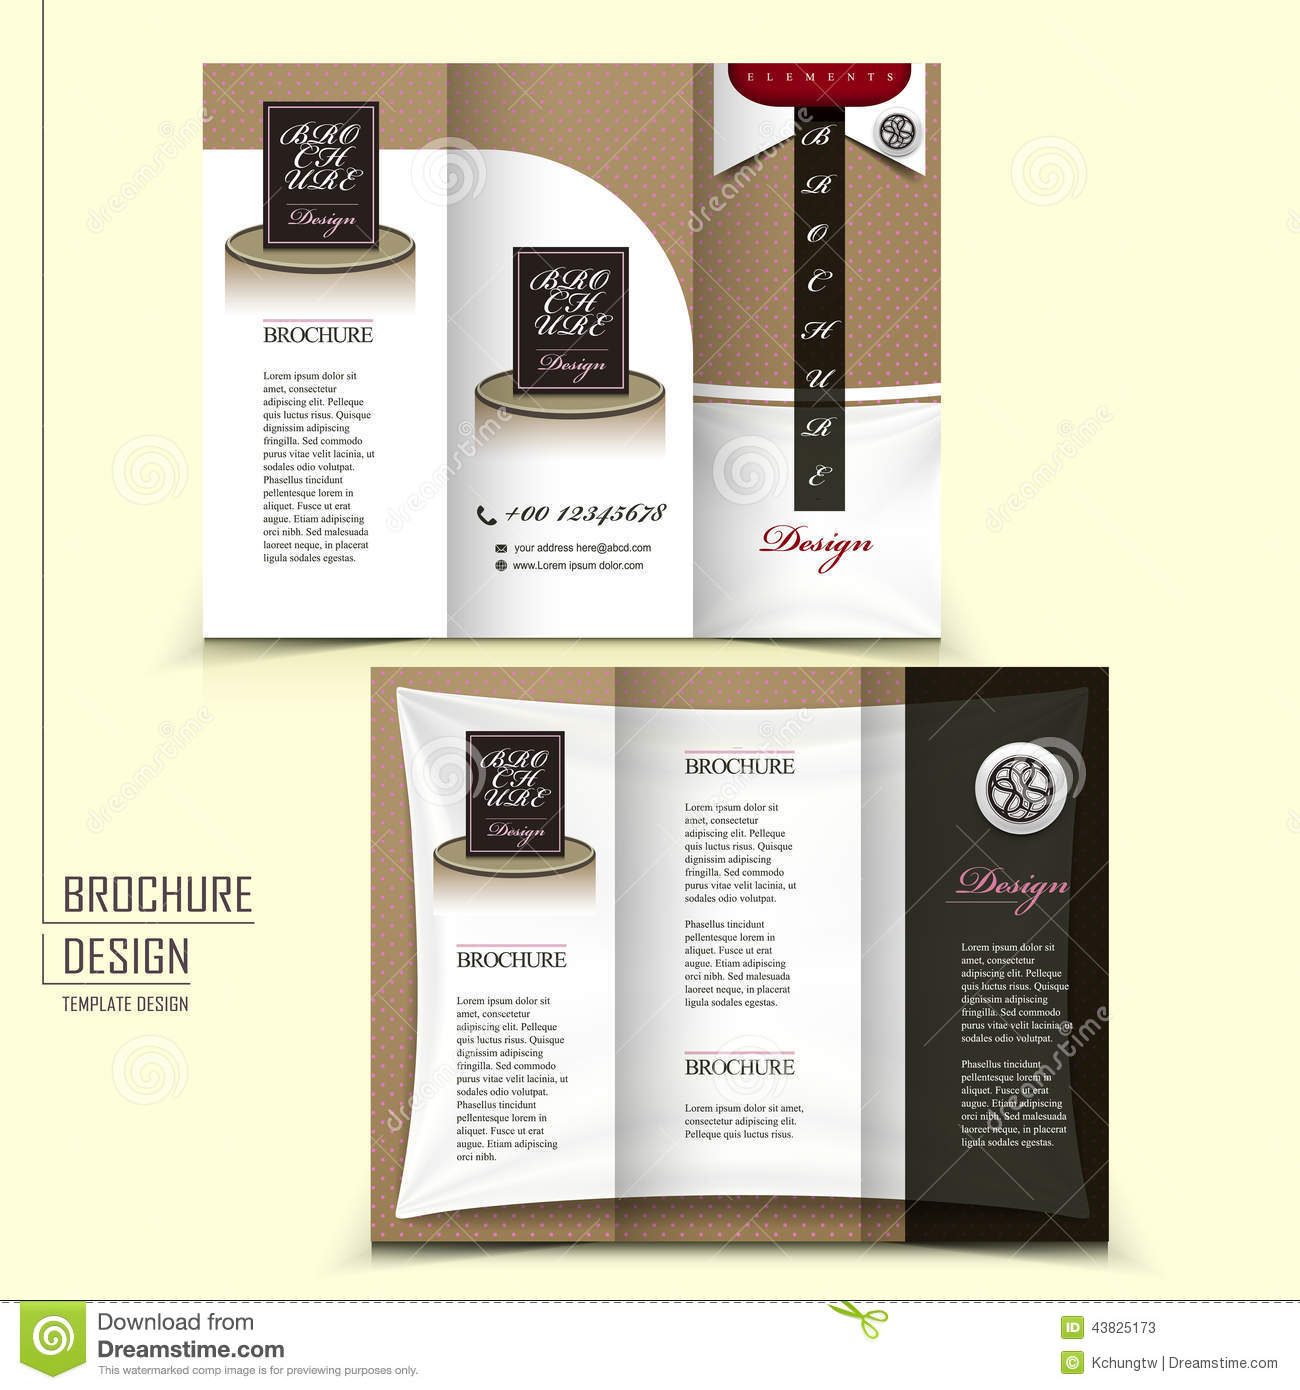 tri fold template brochure for restaurant advertising. Black Bedroom Furniture Sets. Home Design Ideas